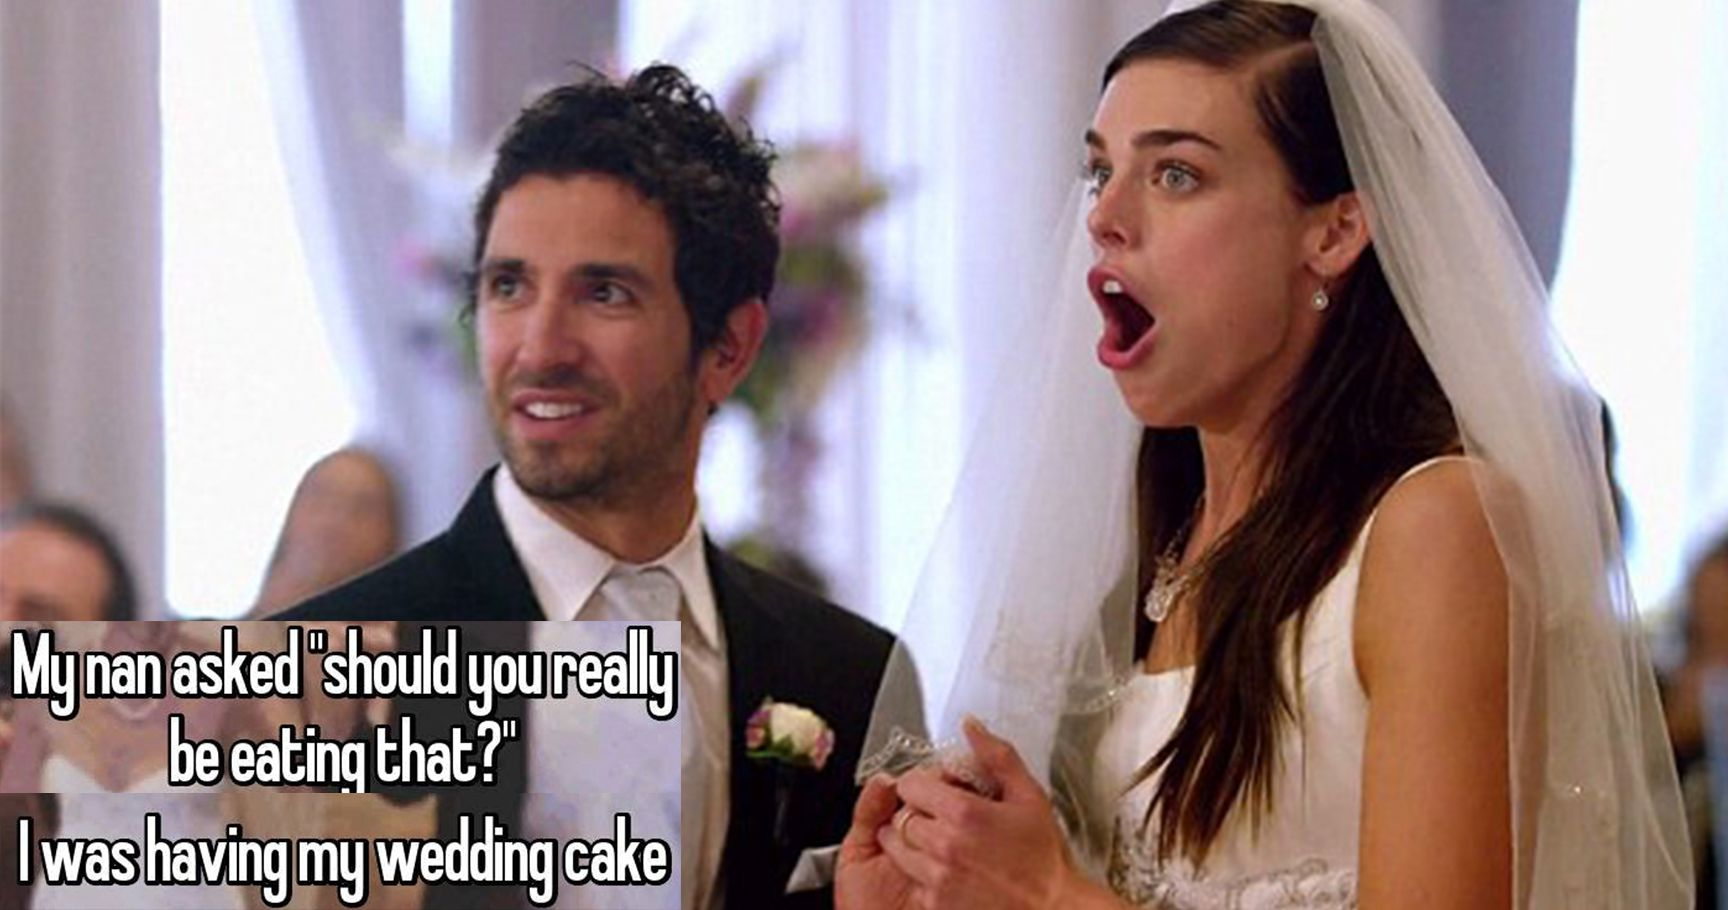 15 Scandalous Wedding Day Confessions No One Would Wish Upon Newlyweds